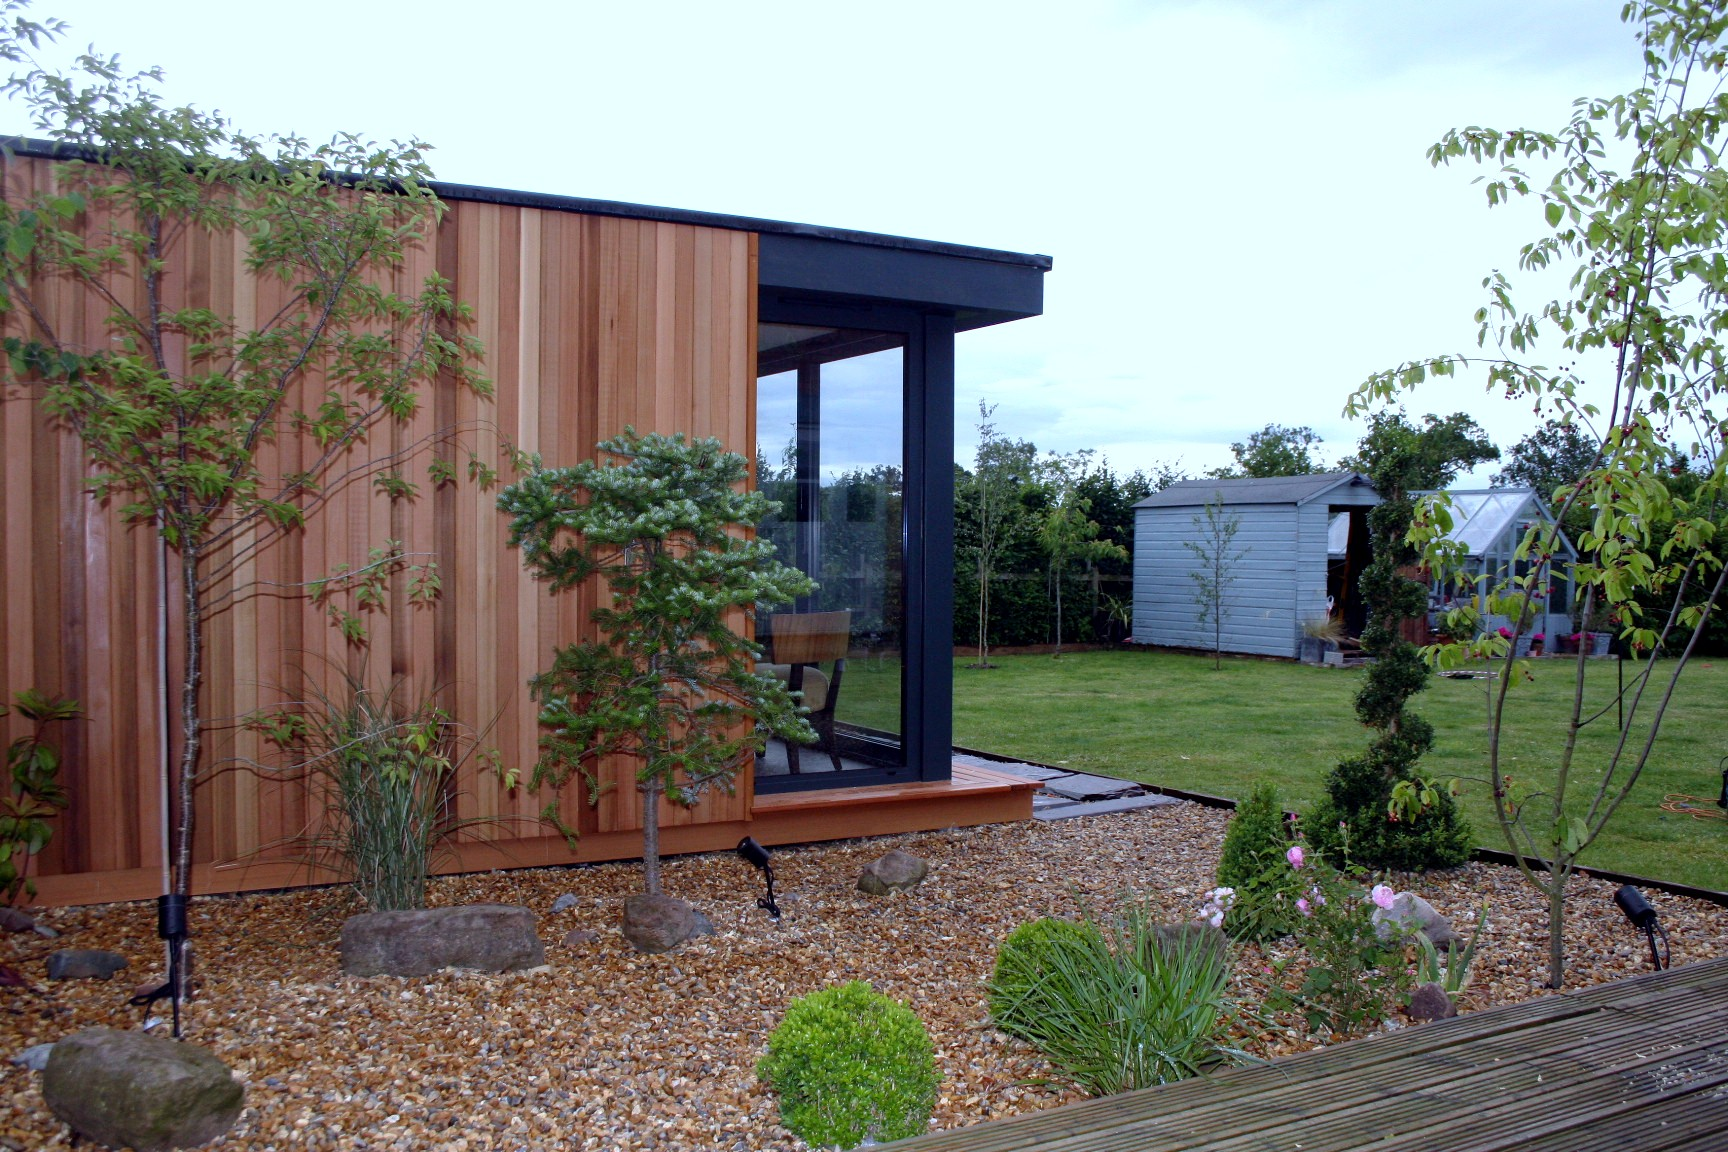 Garden Room Uses - Our garden rooms offer the perfect solutions for real modern days problems, whether it be for a place to work, rest or play. See what we have to offer.